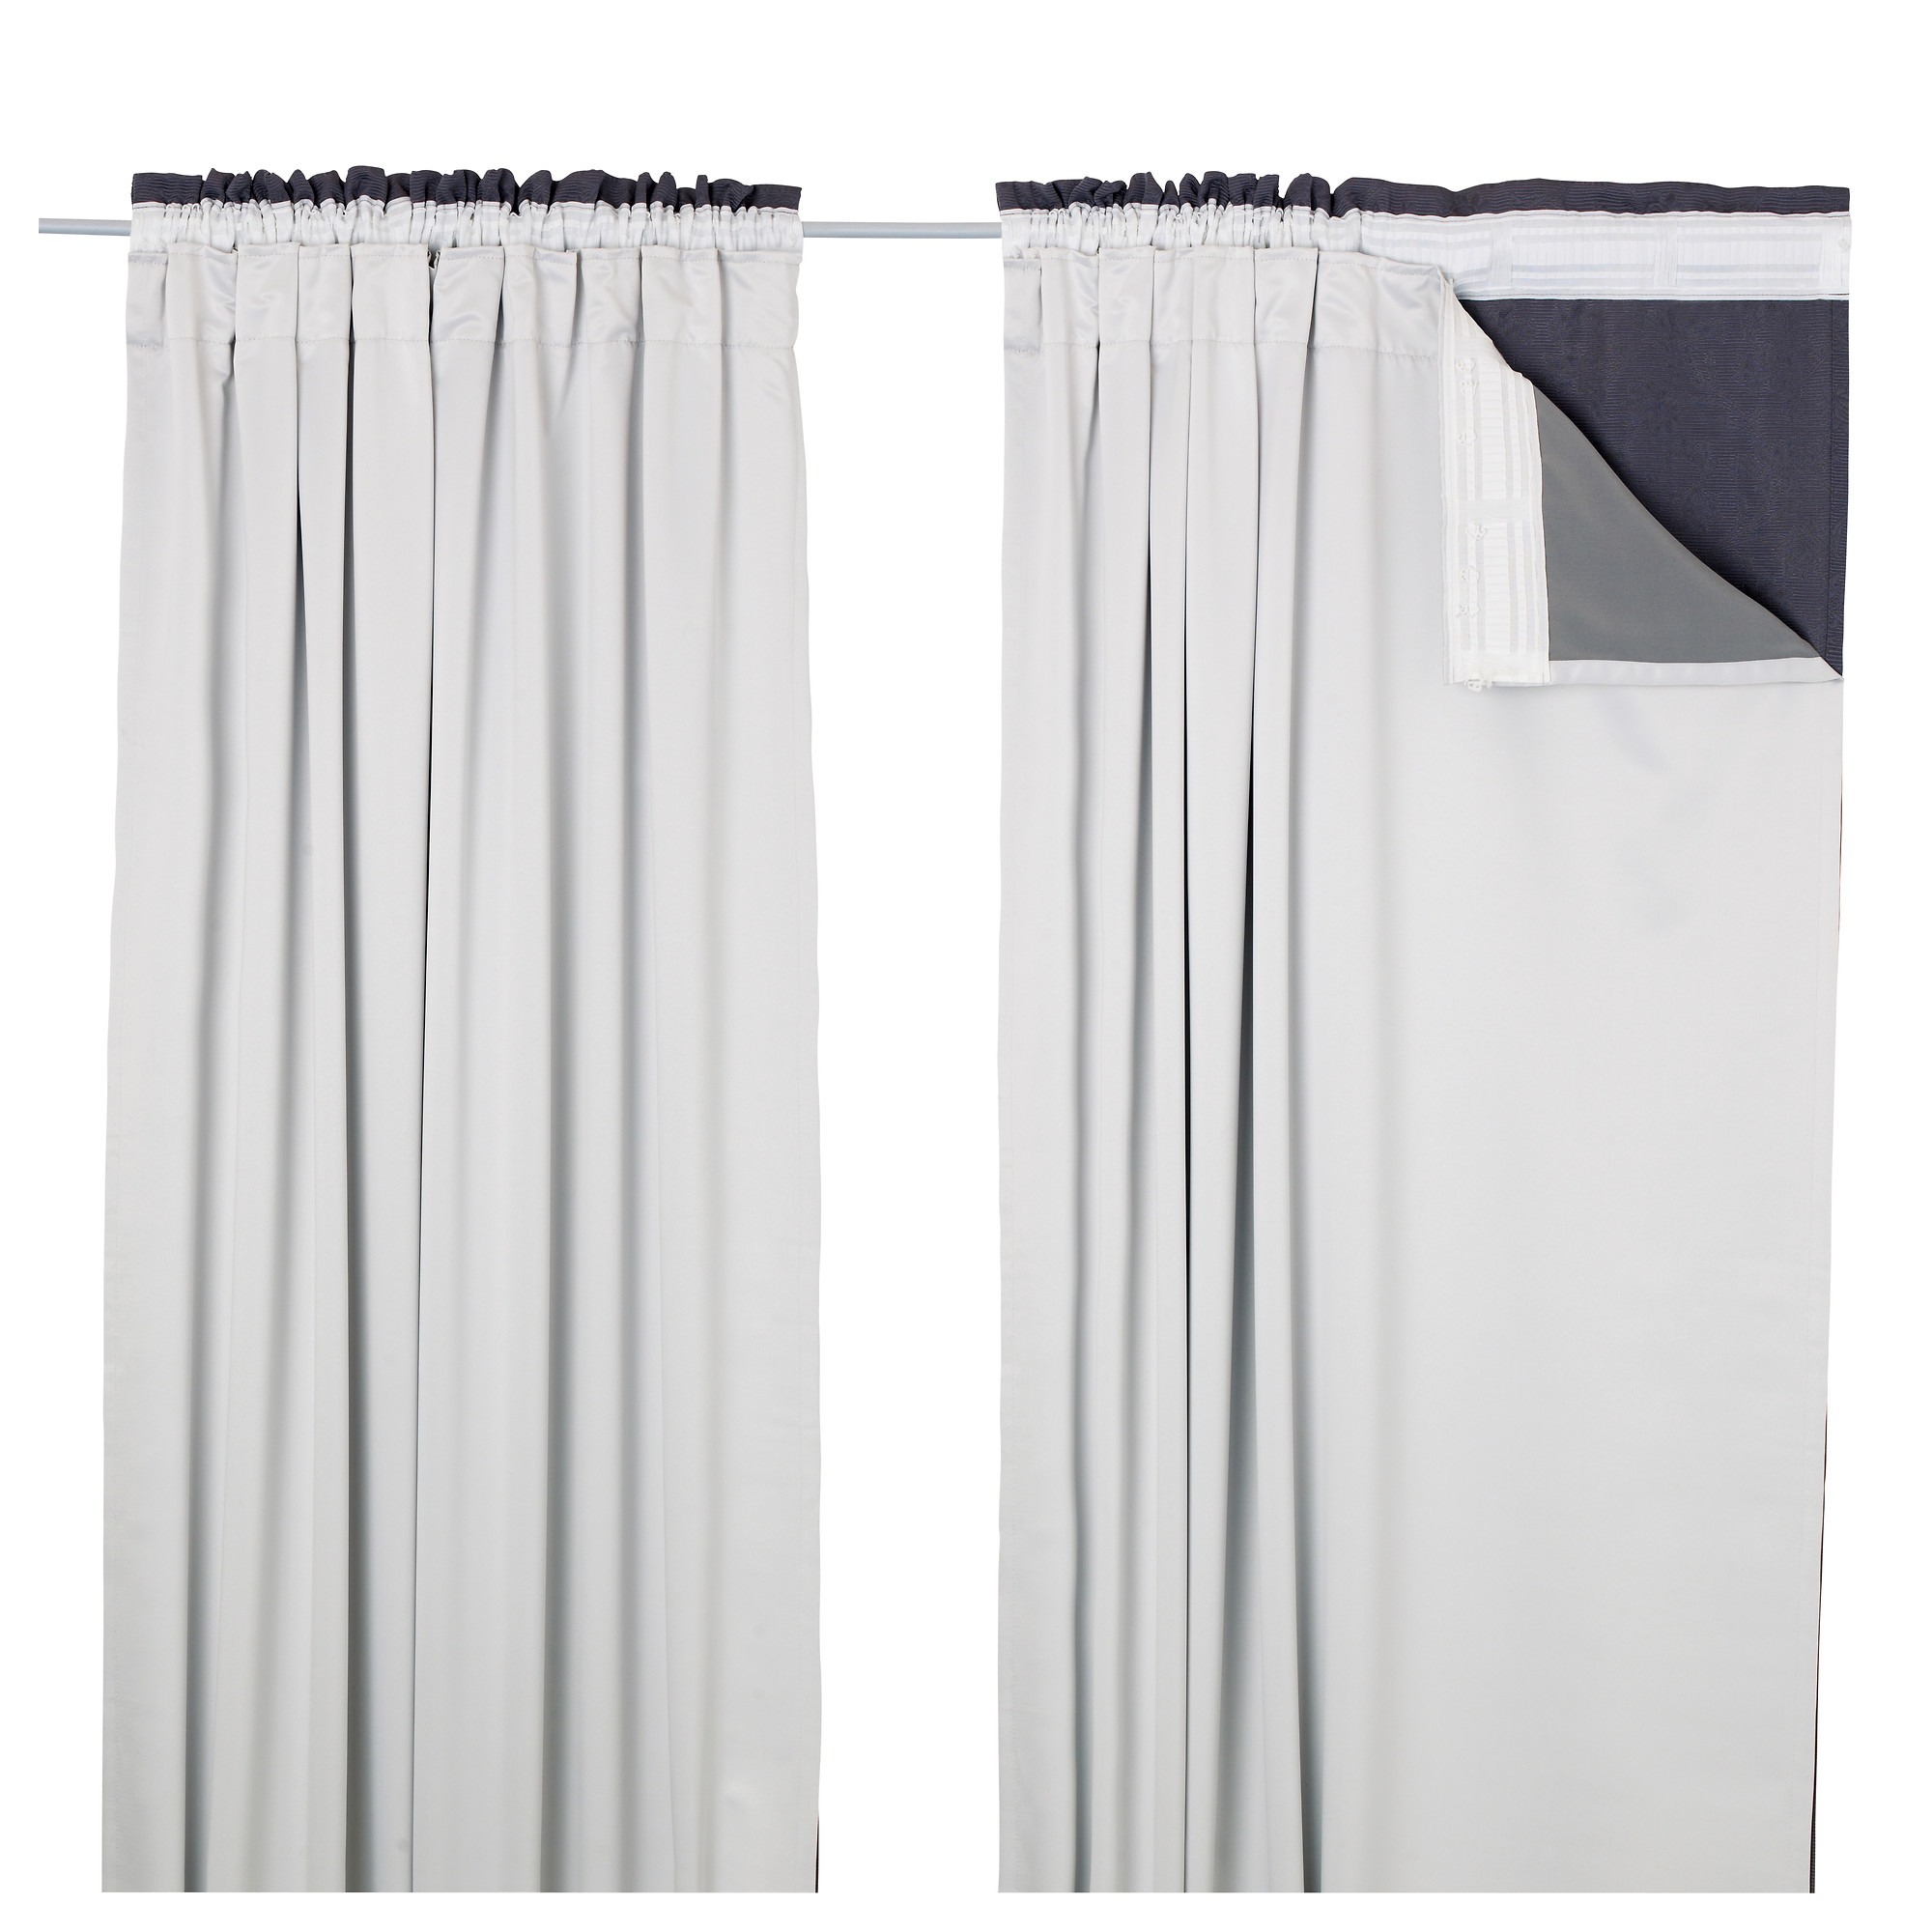 White curtains bedroom - Glansn Va Curtain Liners 1 Pair Light Gray Length 114 Width 56